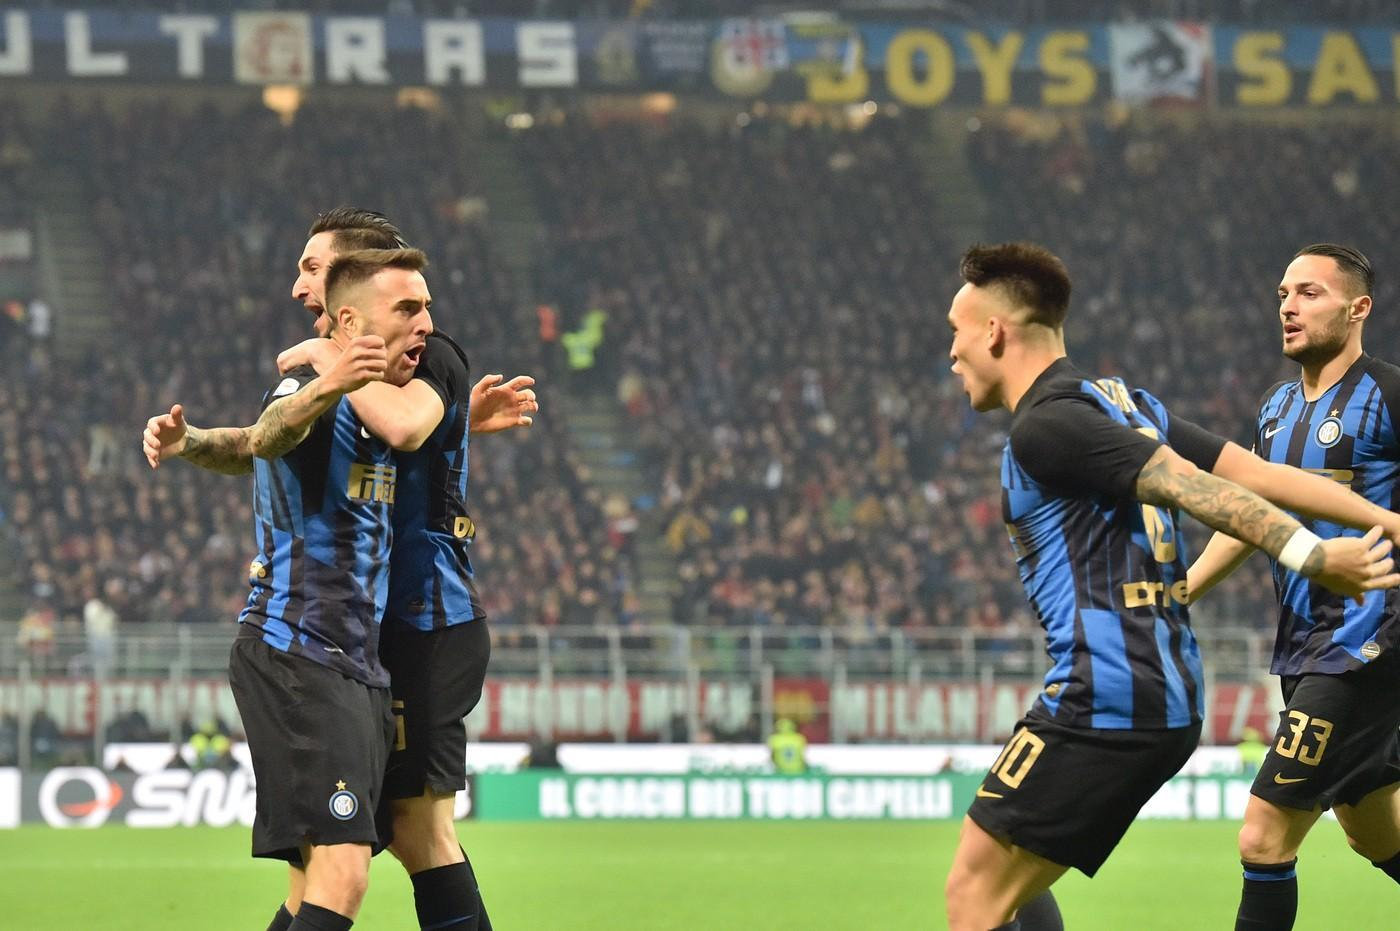 L'Inter batte 3-2 il Milan e torna terza in classifica. Spalletti espulso©LaPresse